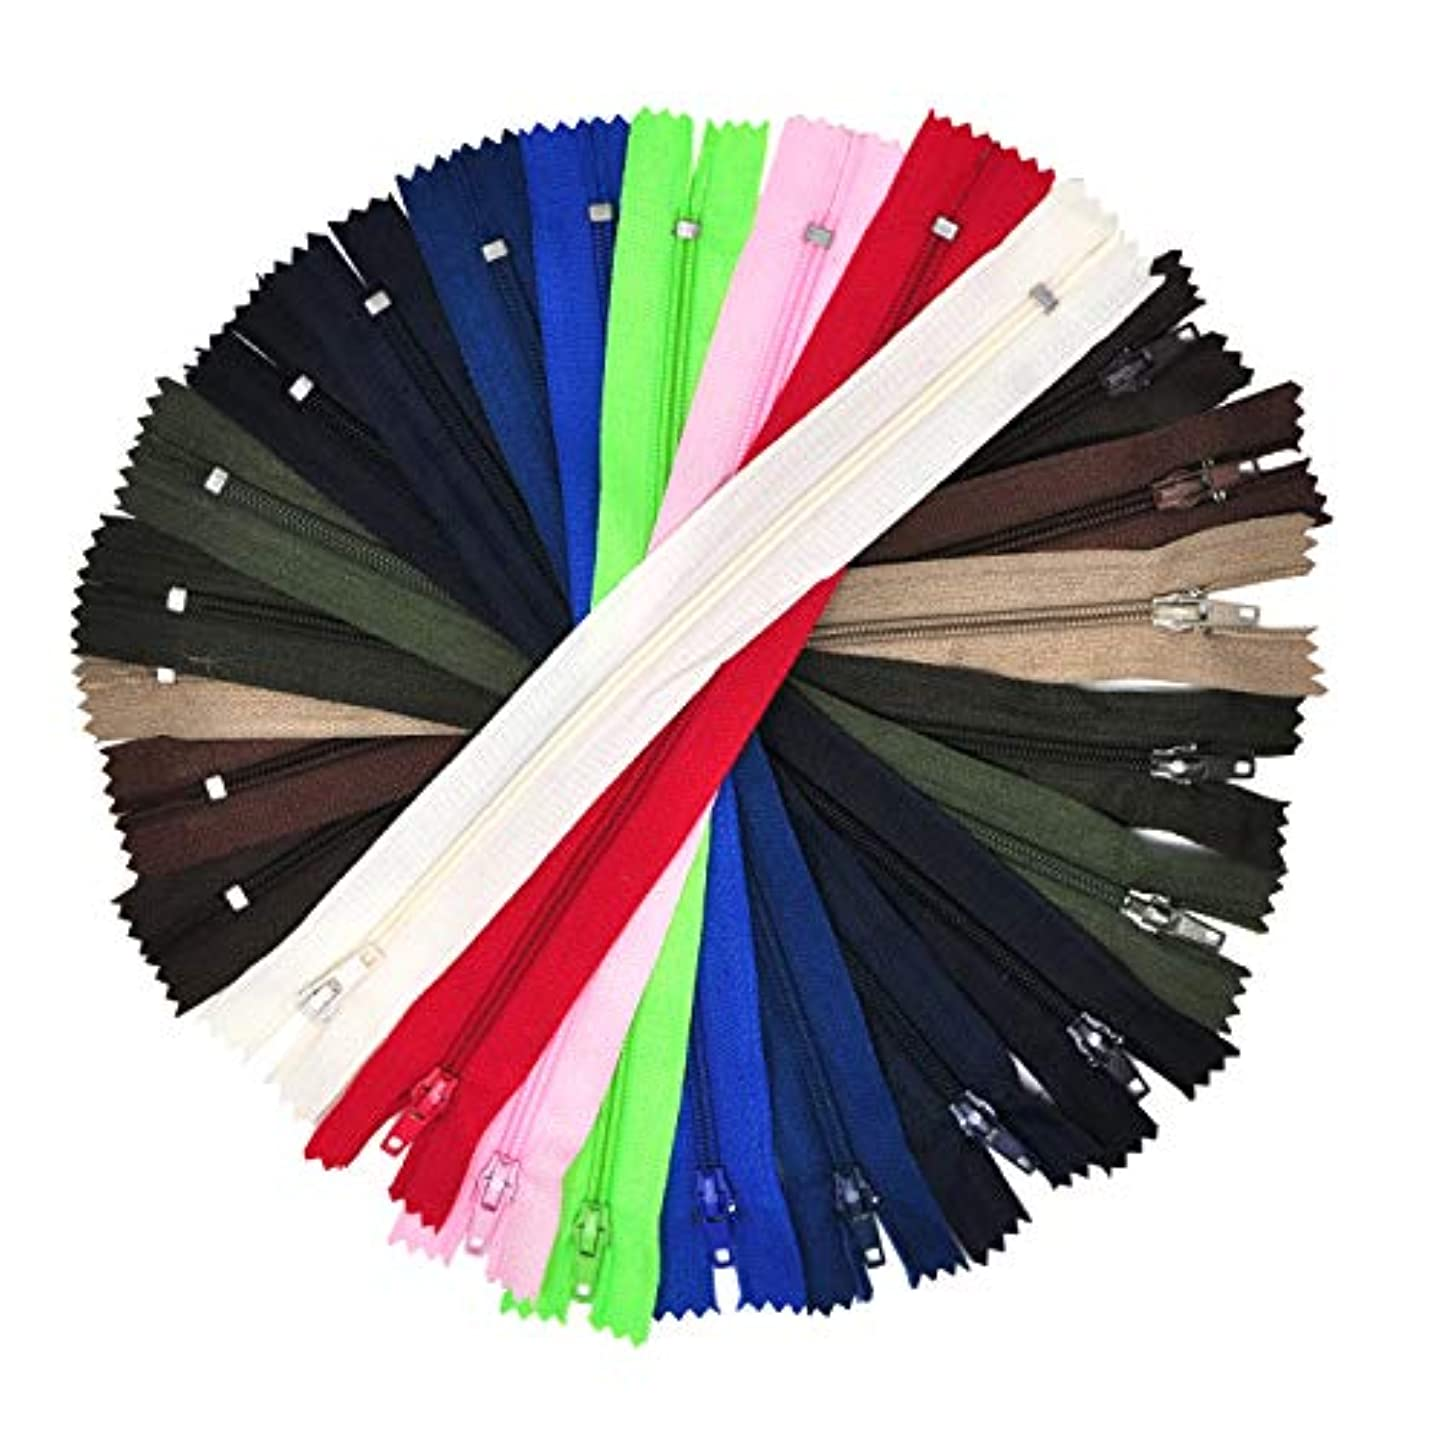 Mandala Crafts Colored Nylon Coil Zipper for Sewing, Handbag, Purse Making, Clothing, Wholesale Pack (8 Inches, Assorted Color)